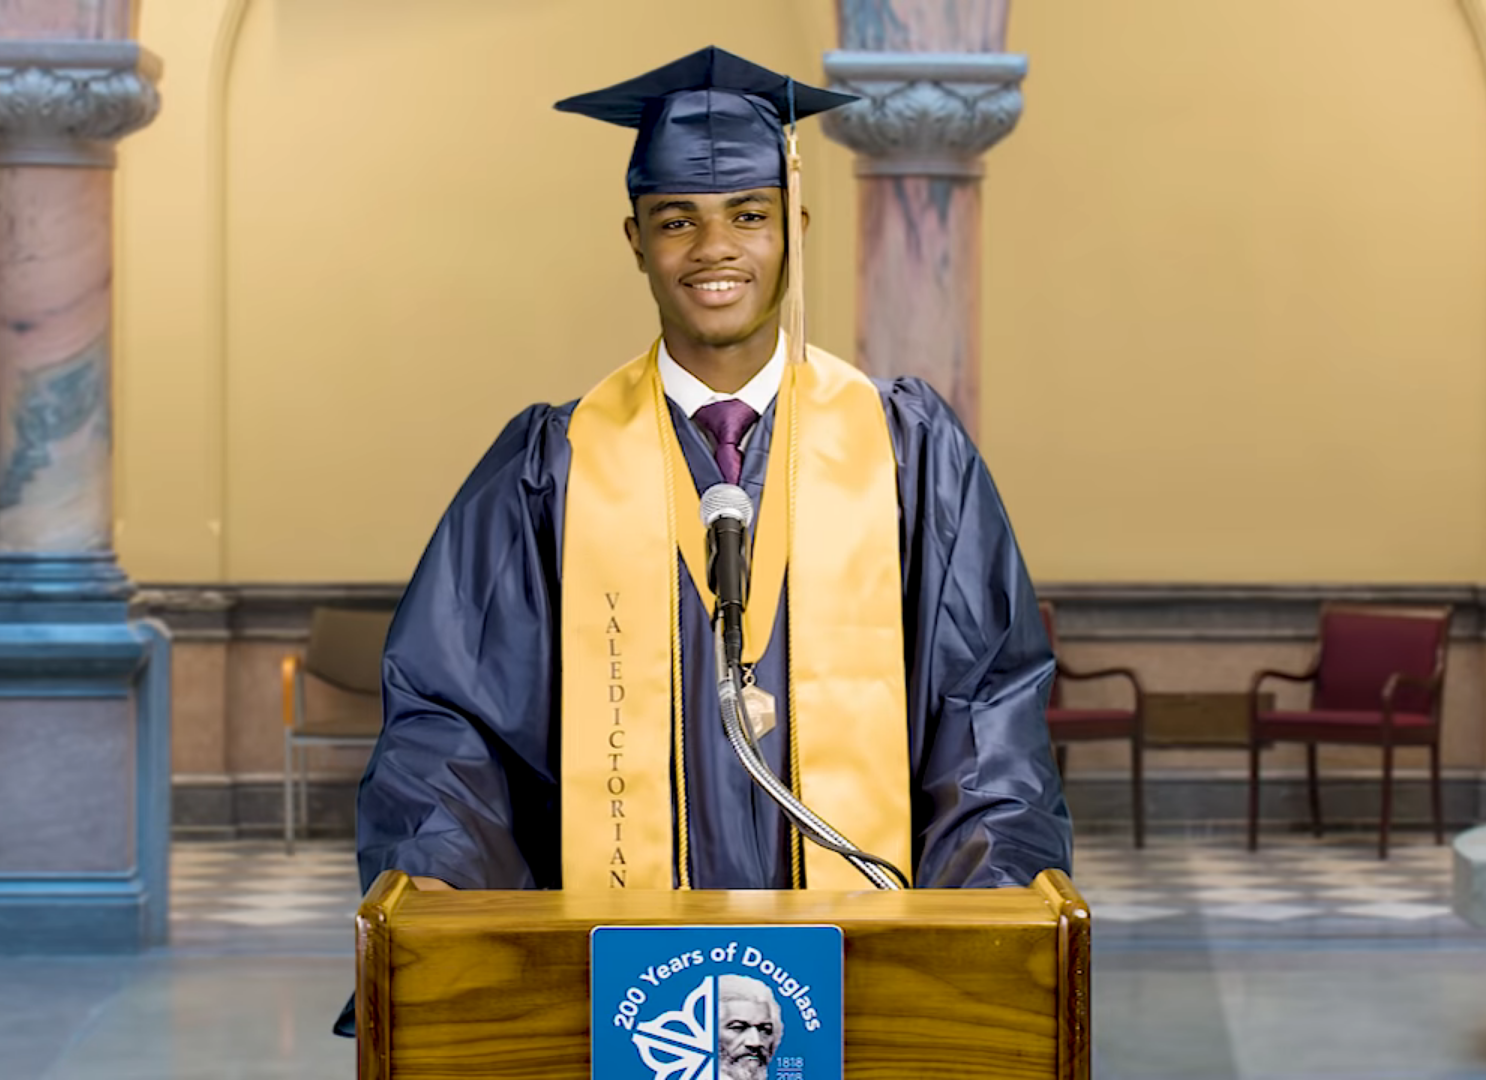 This Valedictorian's Principal Wouldn't Let Him Give an Acceptance Speech, but the Mayor Did